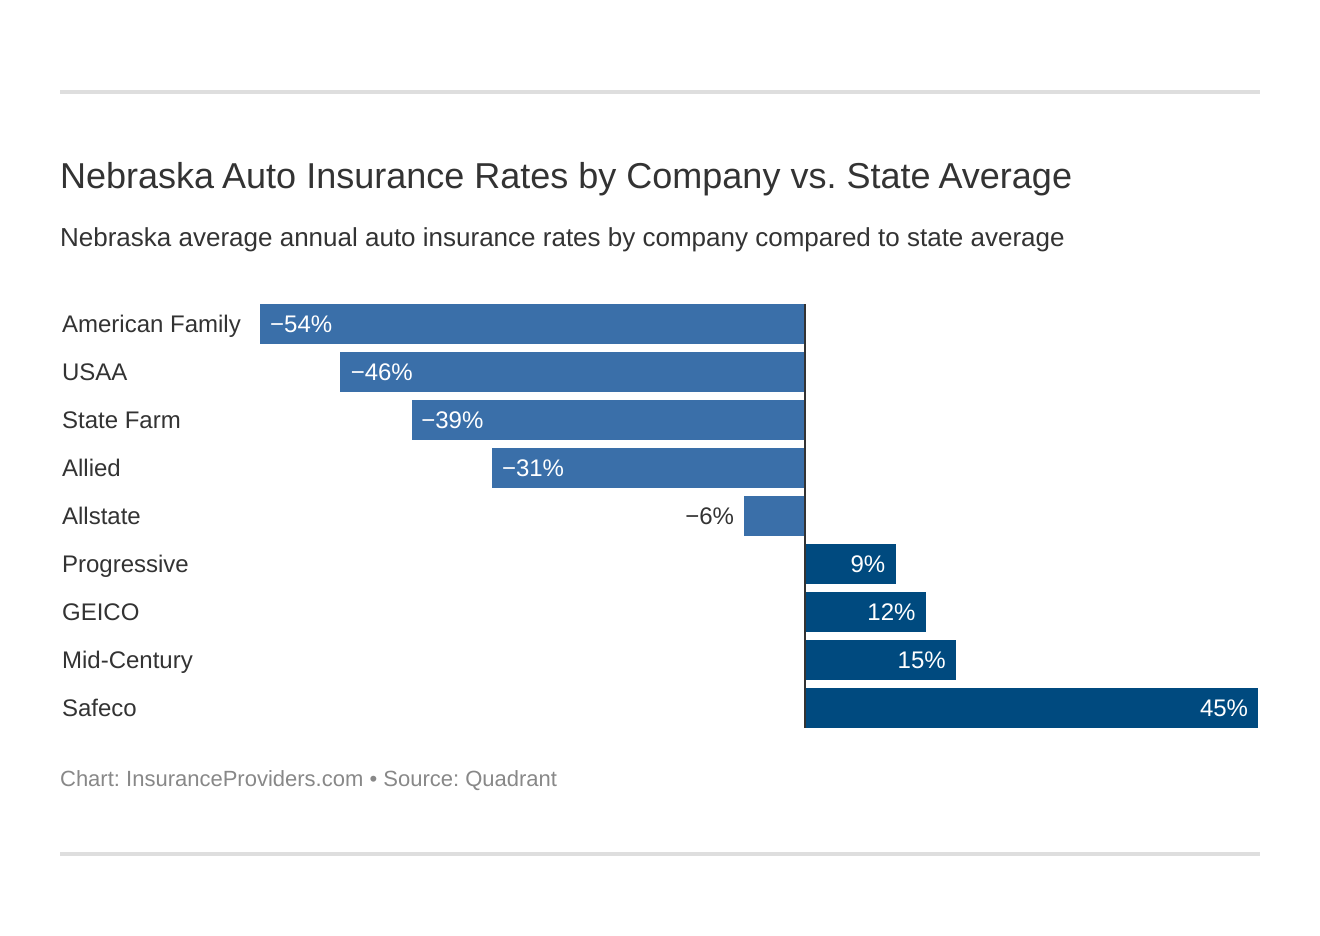 Nebraska Auto Insurance Rates by Company vs. State Average